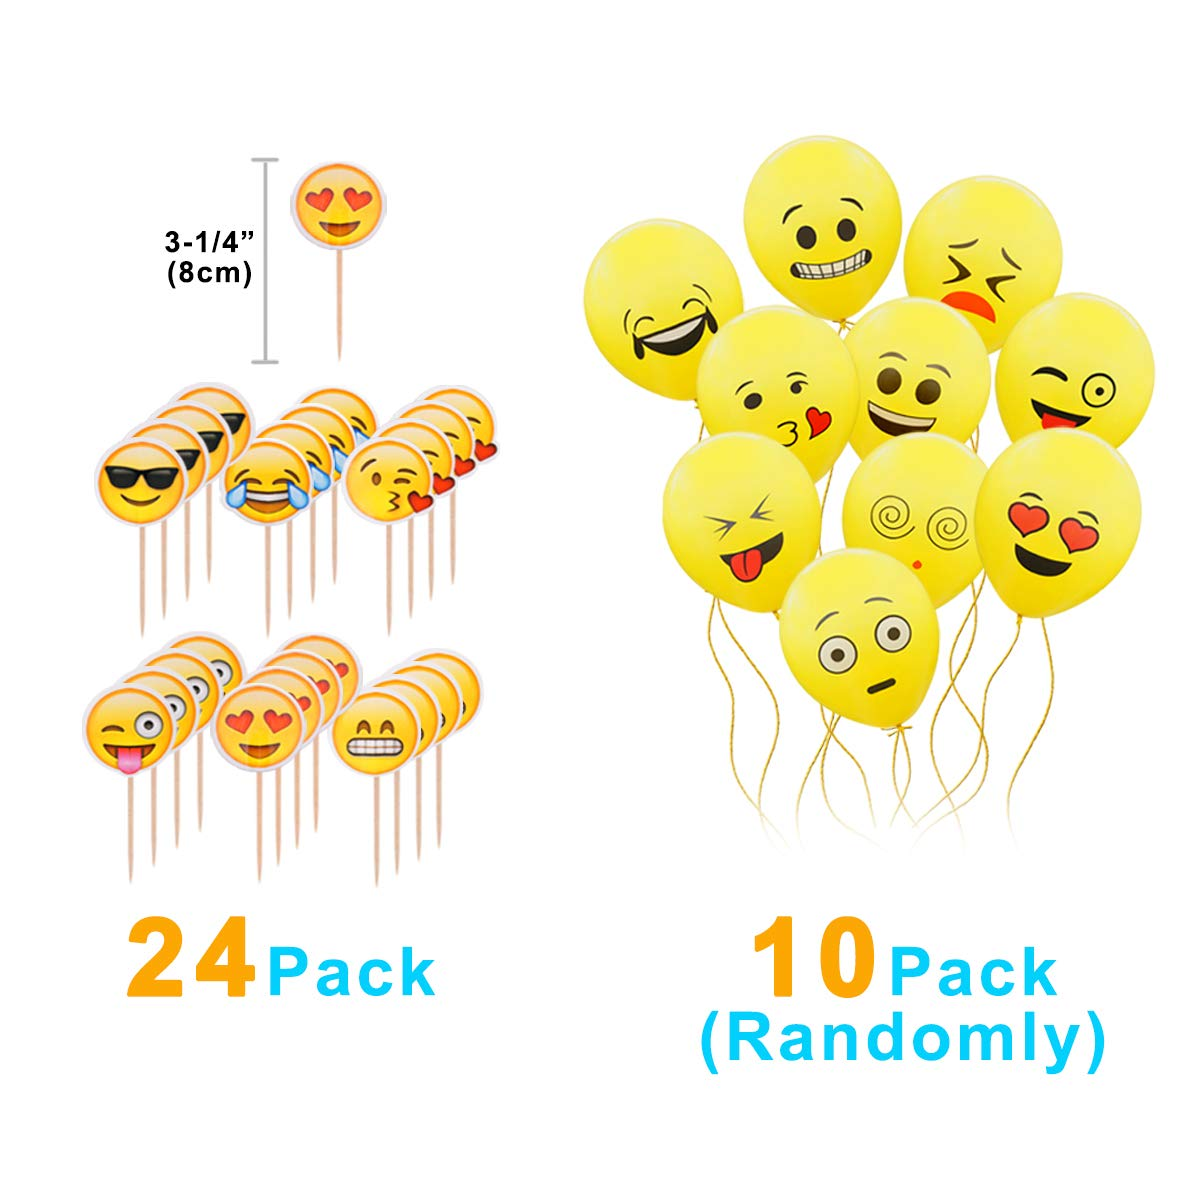 MelonBoat Emoji Party Supplies Birthday Decorations Kit, Plates, Napkins, Tablecloth, Popcorn Boxes, Cake Toppers, Banners, Latex Balloons, 102 ct, ...